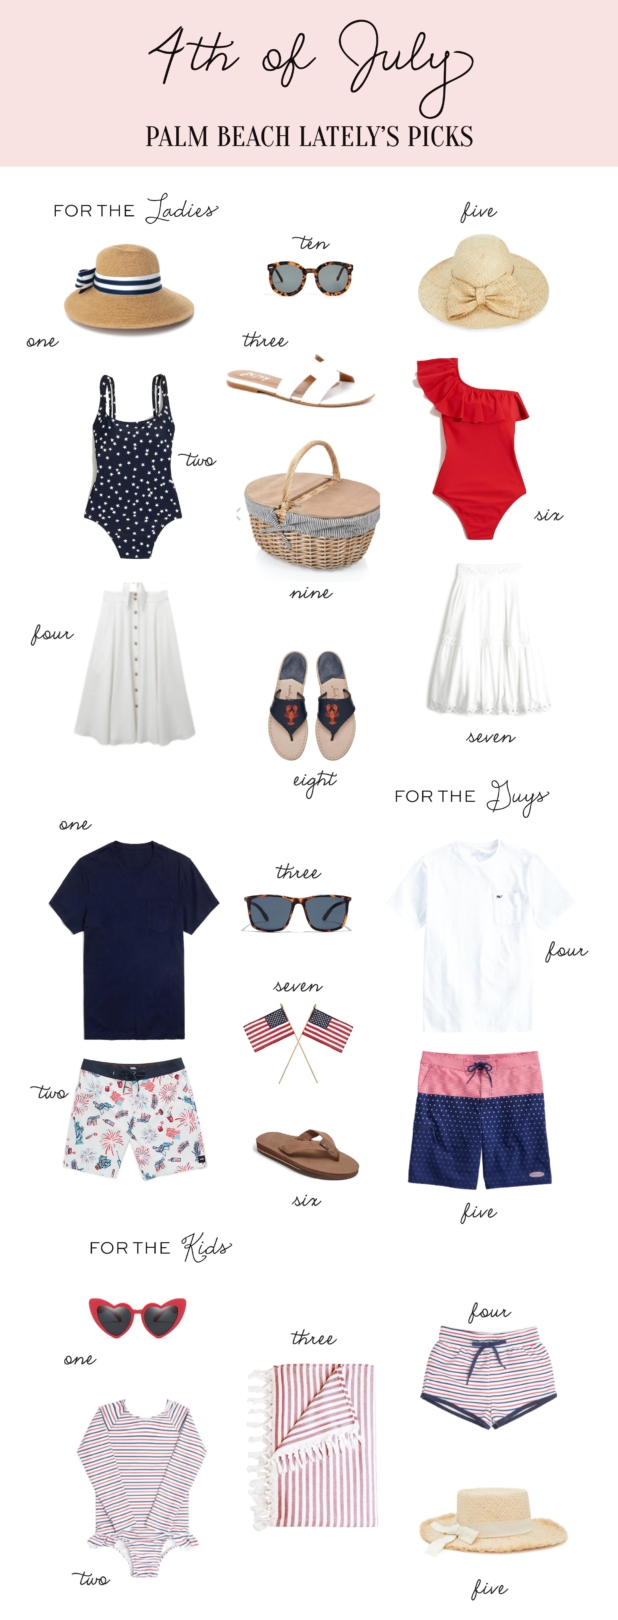 Palm Beach Lately 4th of July Looks for the Family